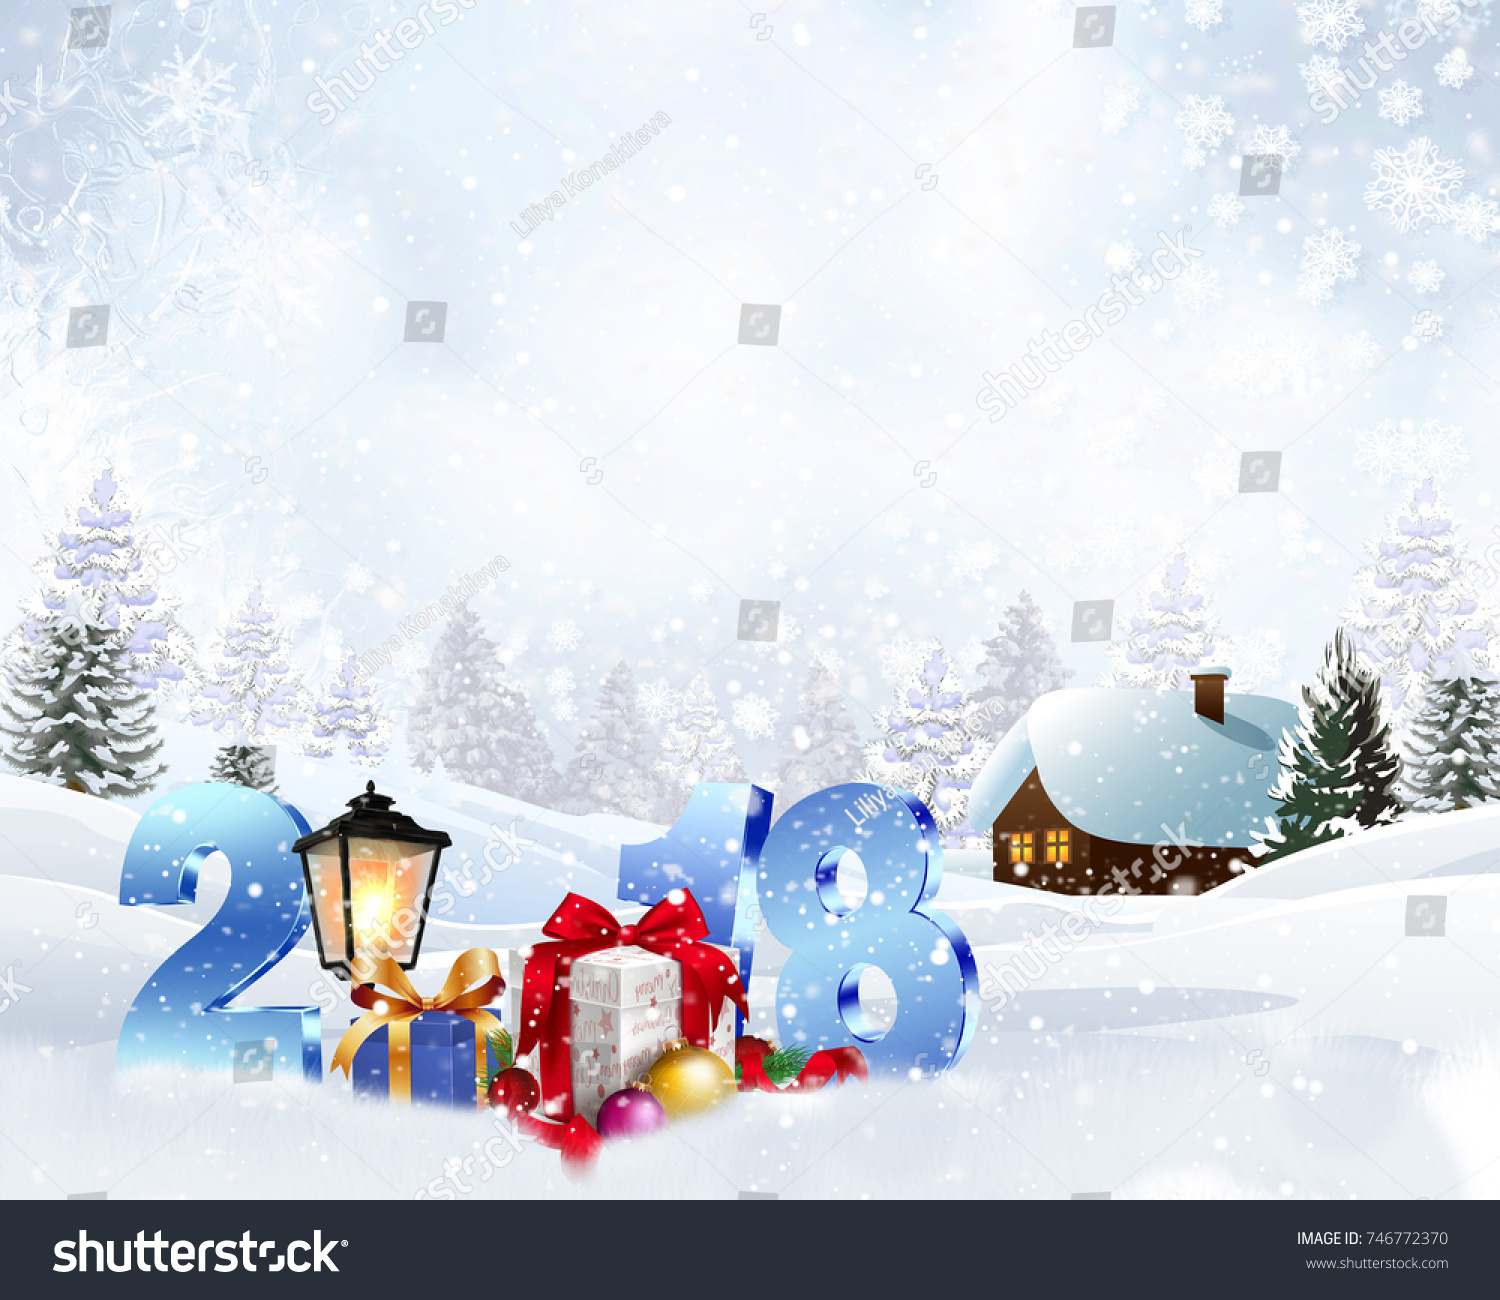 Winter Christmas Background Snowy House 2018 Stock Illustration ...